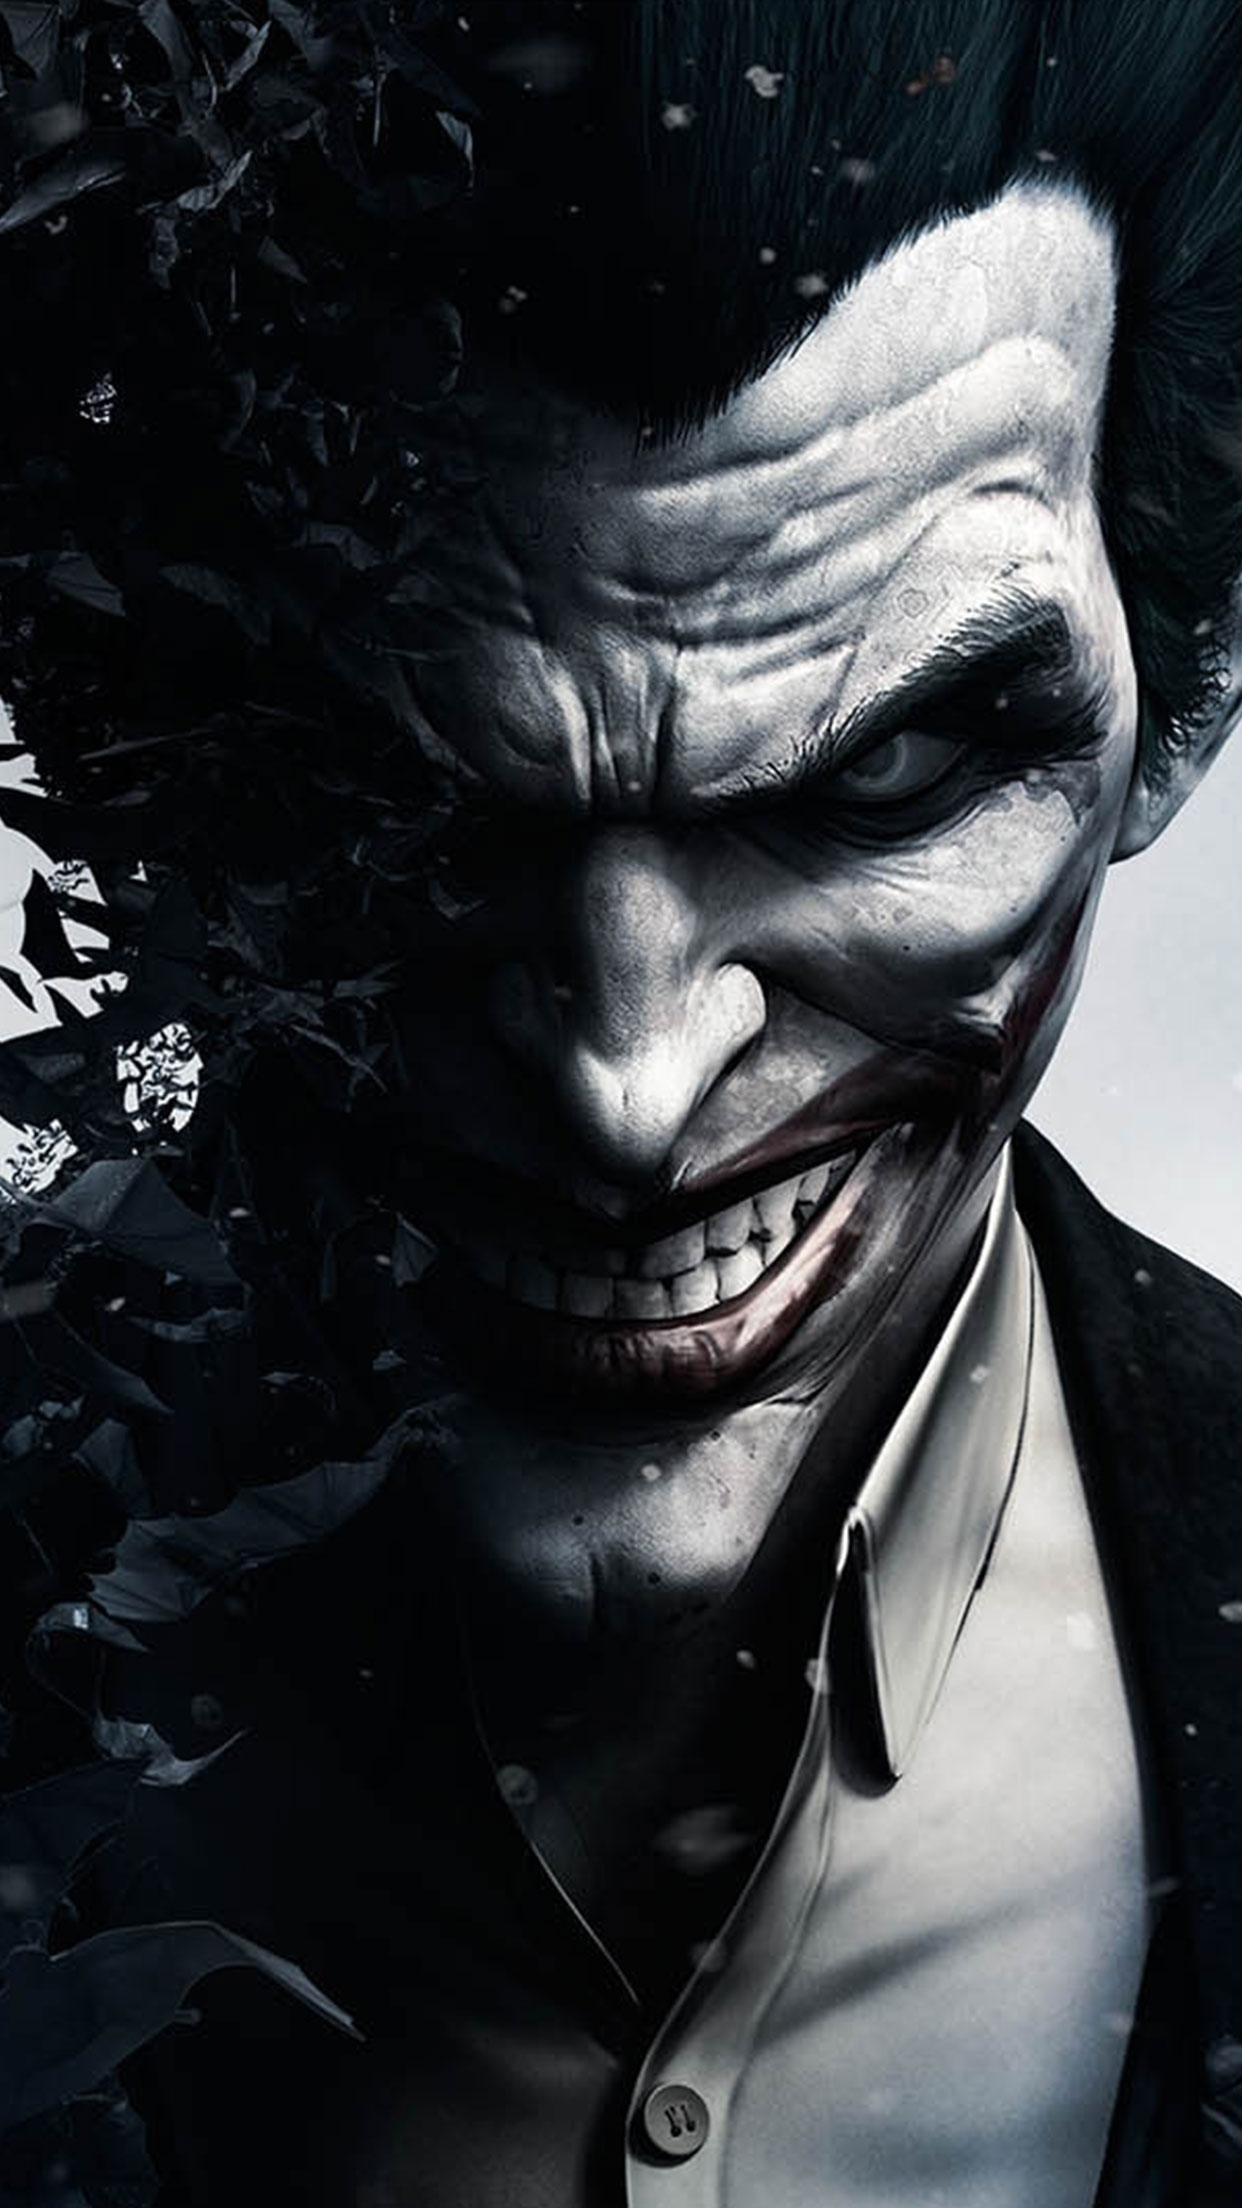 10 Latest Joker Hd Wallpapers For Android Full Hd 1920 1080 For Pc